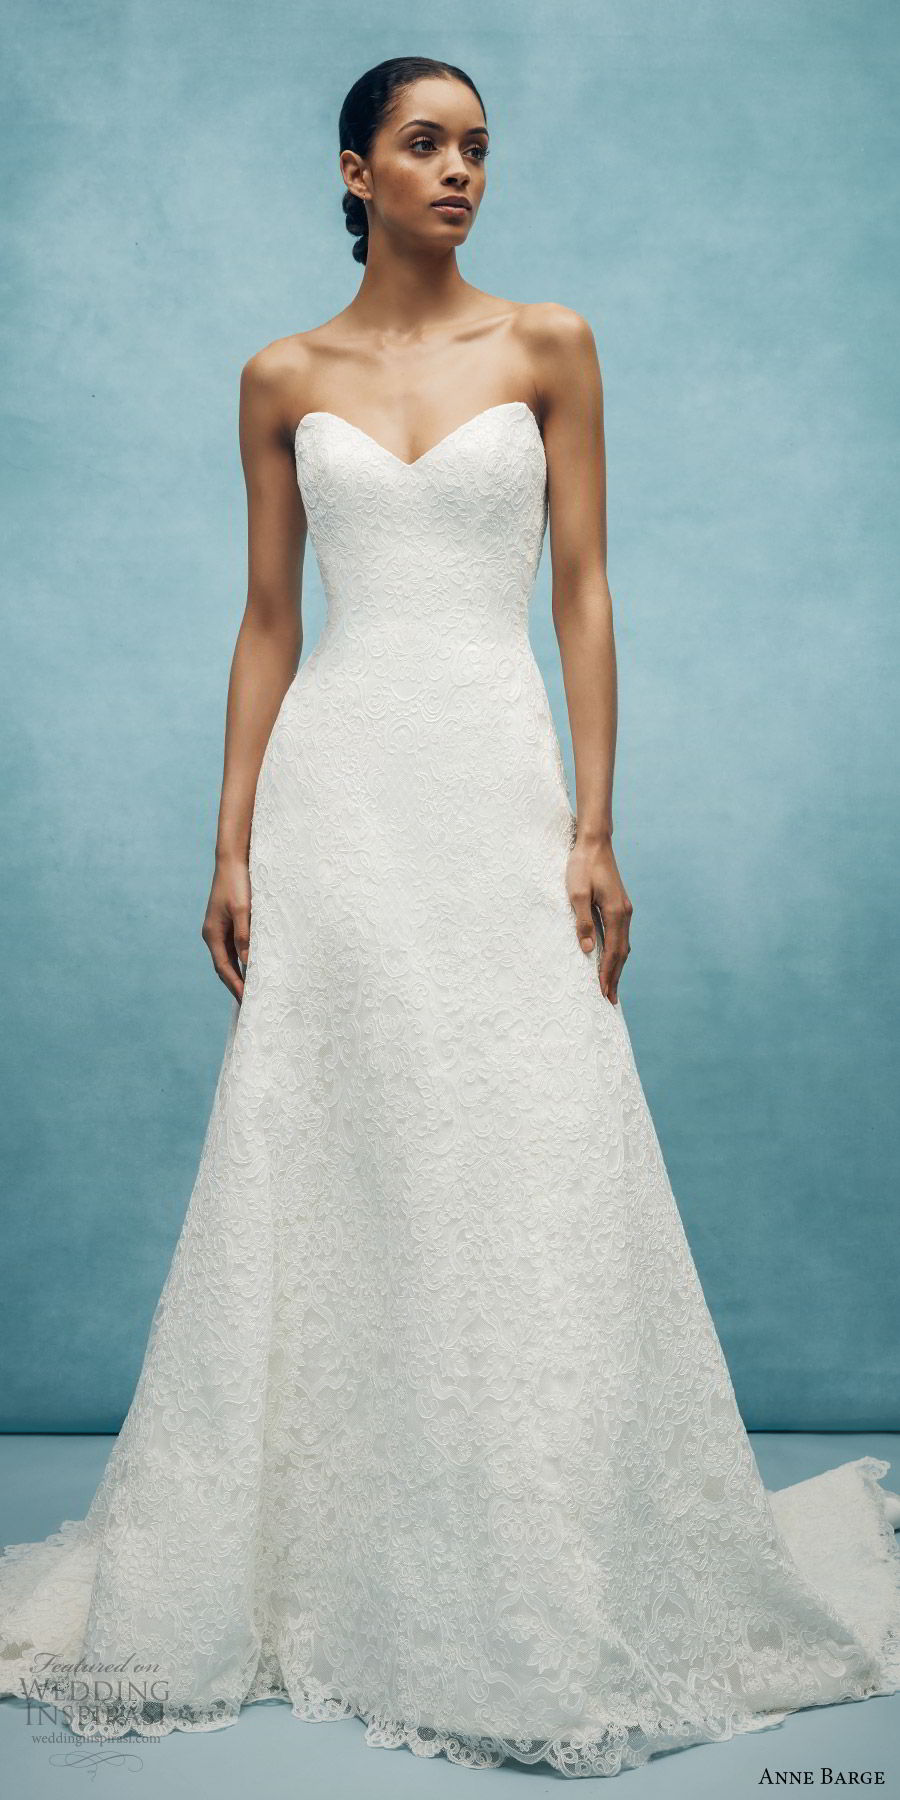 anne barge spring 2020 bridal strapless sweetheart embellished a line wedding dress (2) elegant classic chapel train mv